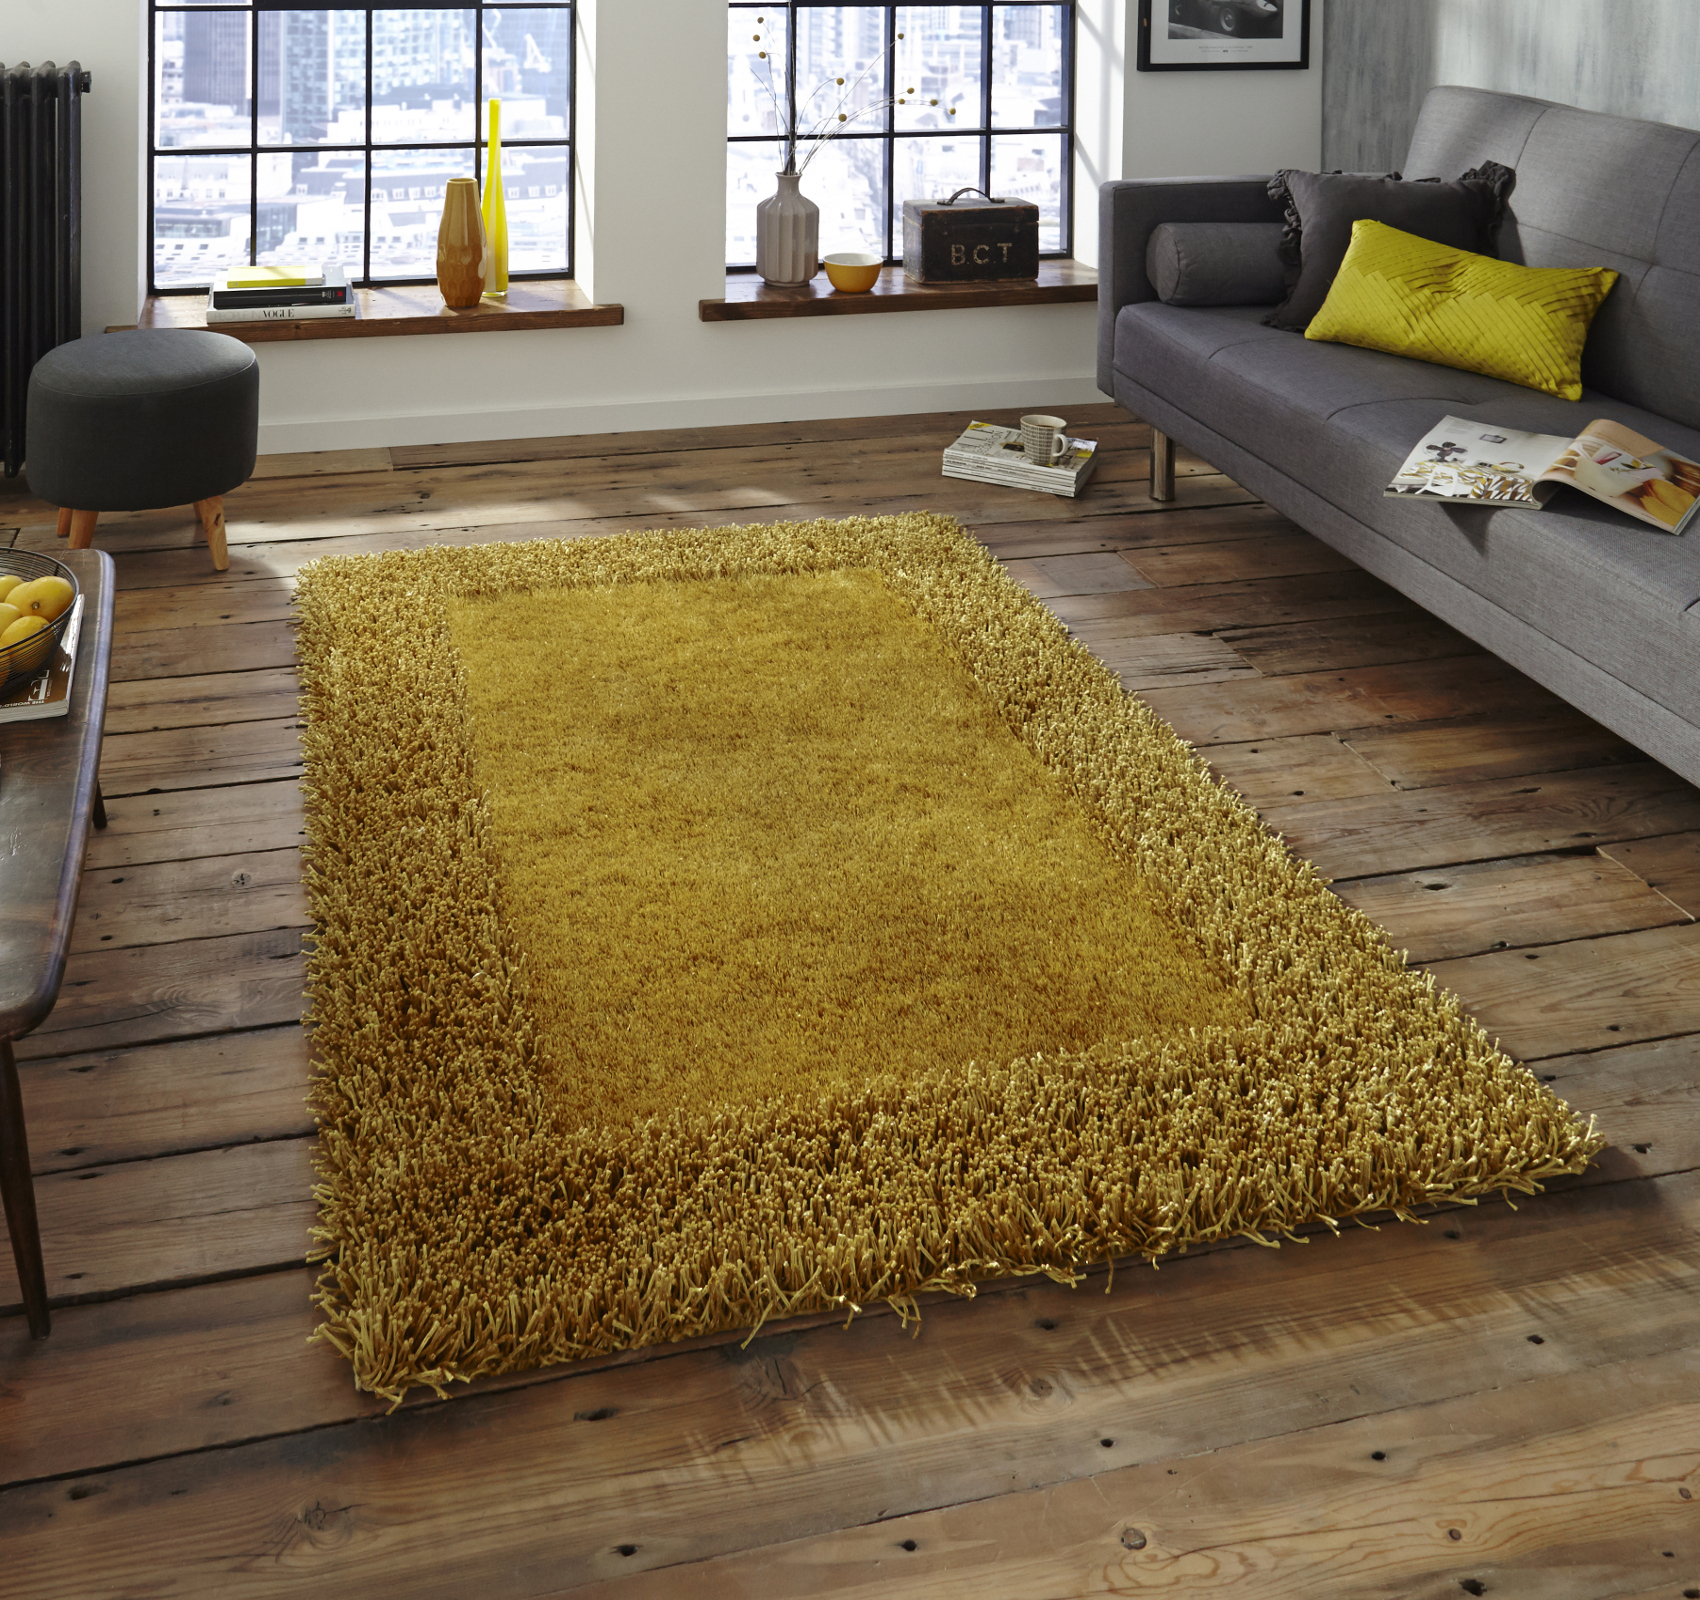 Yellow Shaggy Rug Uk: Soft Sable Shaggy Pile Rug Hand Tufted Rectangle Design